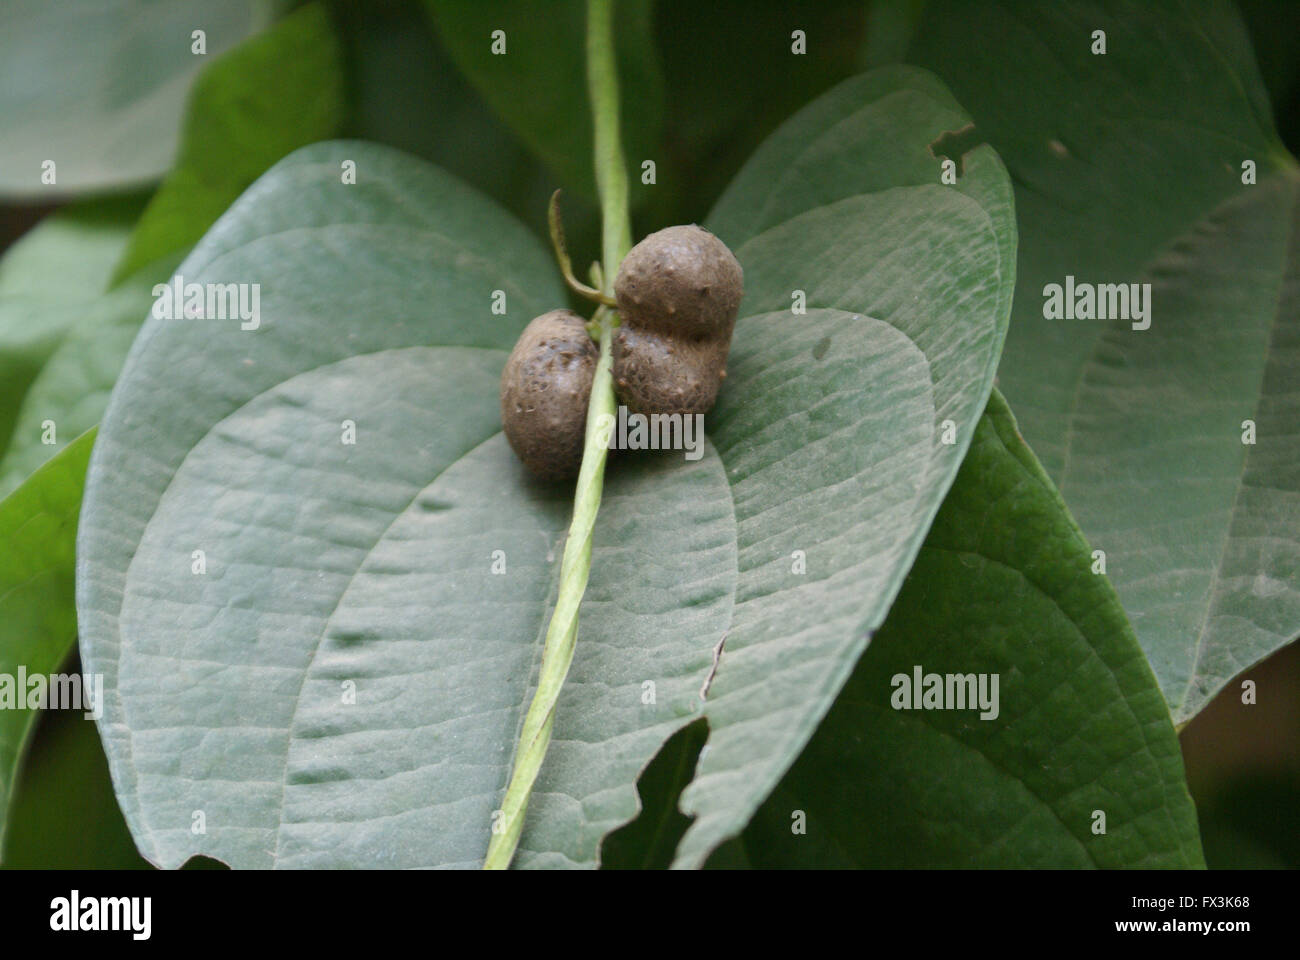 Dioscorea alata, purple yam, tuberous root vegetable with climbing planrs with heart shaped leaves, globose aerial - Stock Image